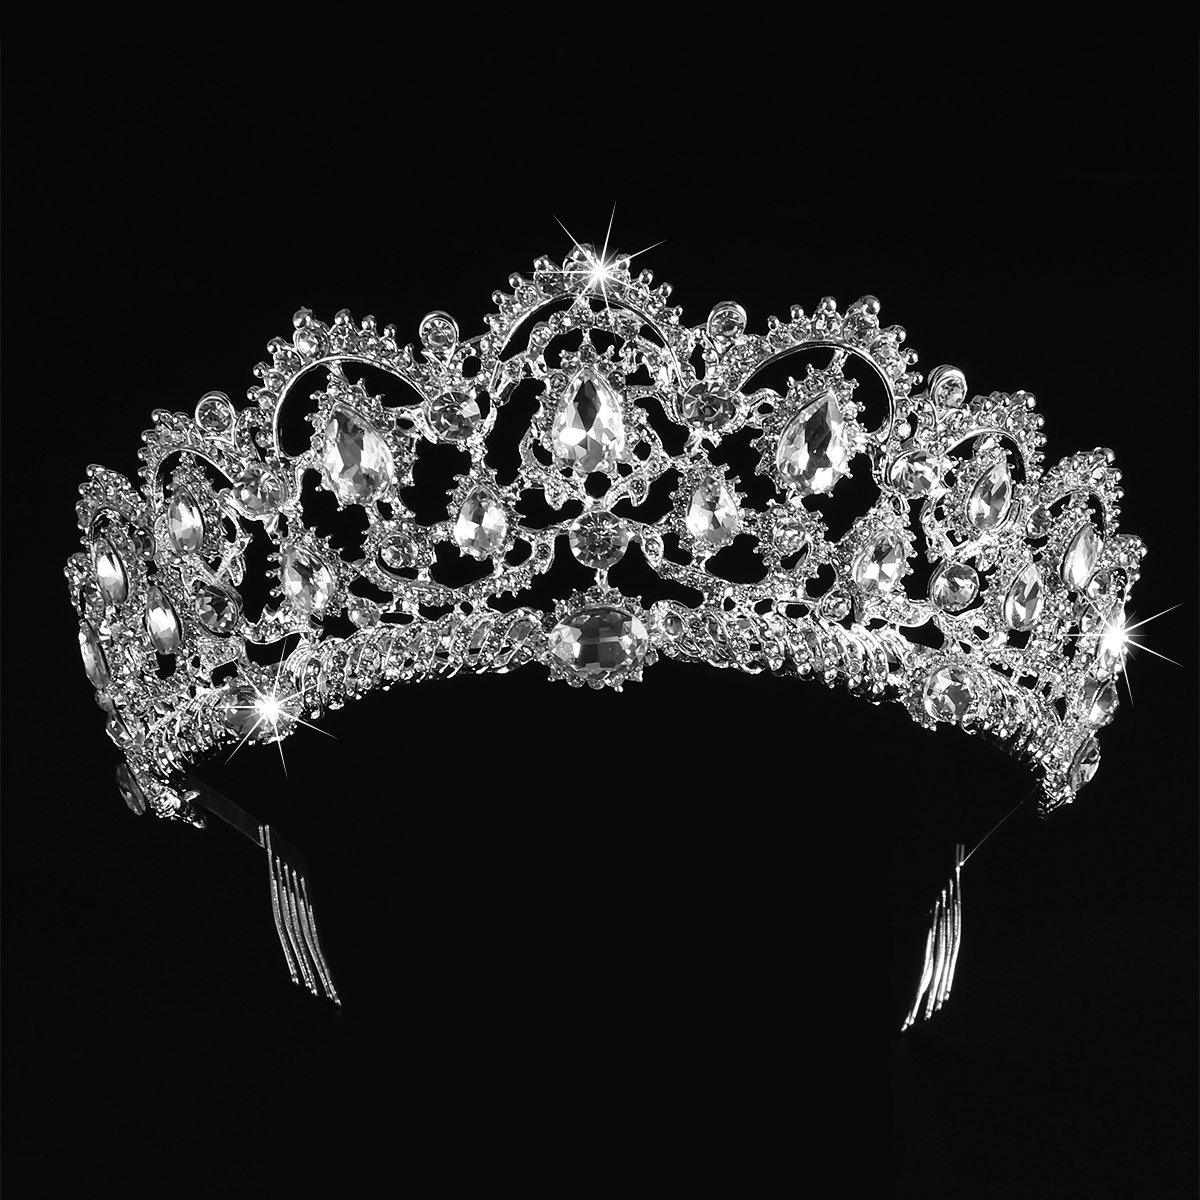 Tiara Crowns, Rhinestone Crystal Queen Tiara Headband Wedding Pageant Crowns Princess Crown for Women